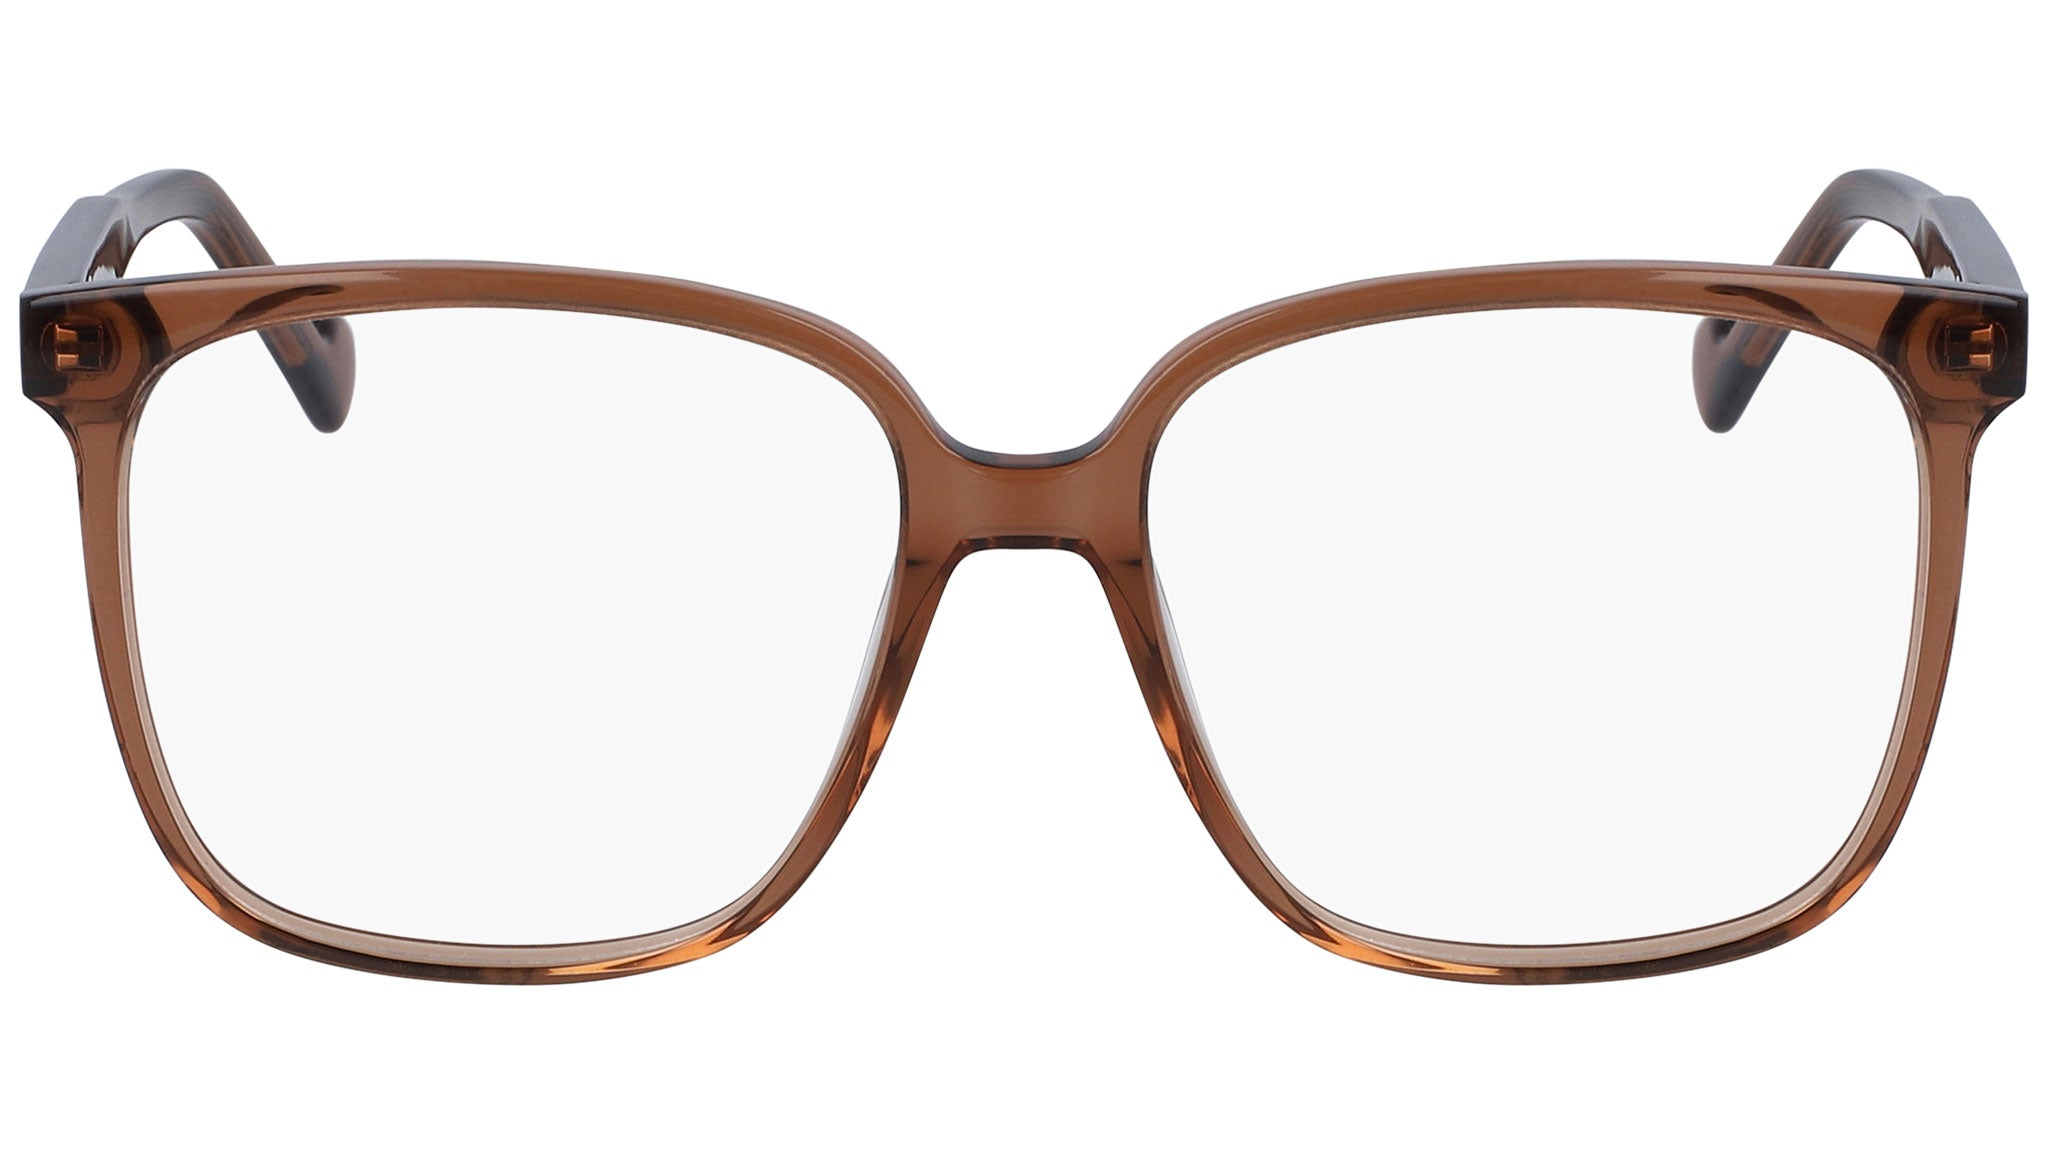 LJ2724 210 transparent brown